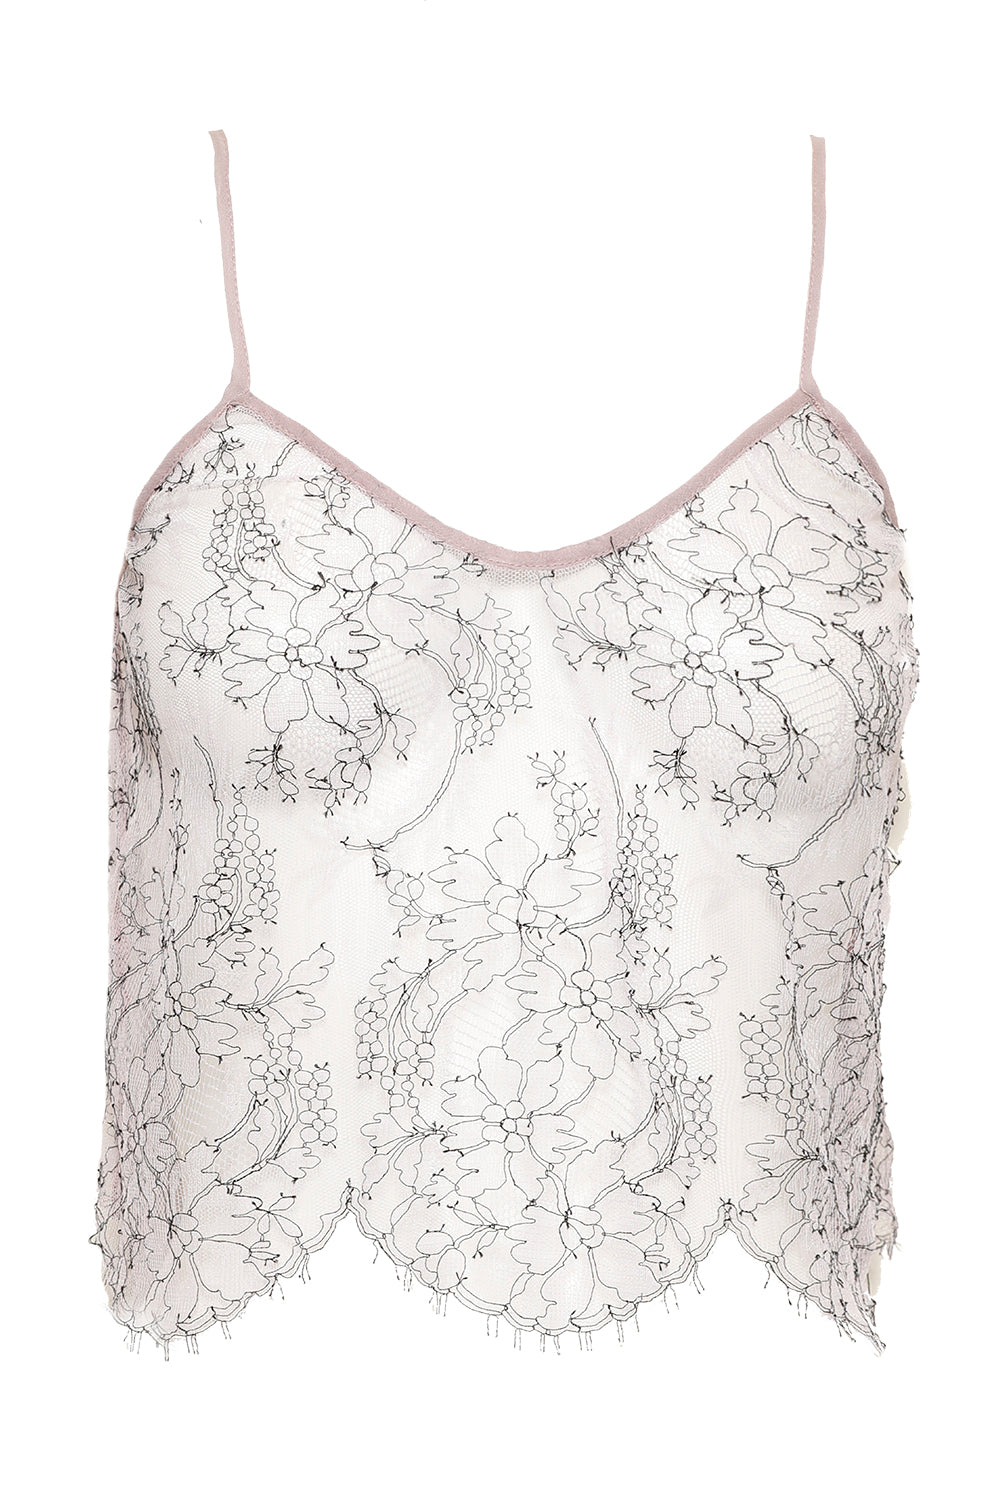 VIOLET VALENTINE SHEER LACE CAMISOLE